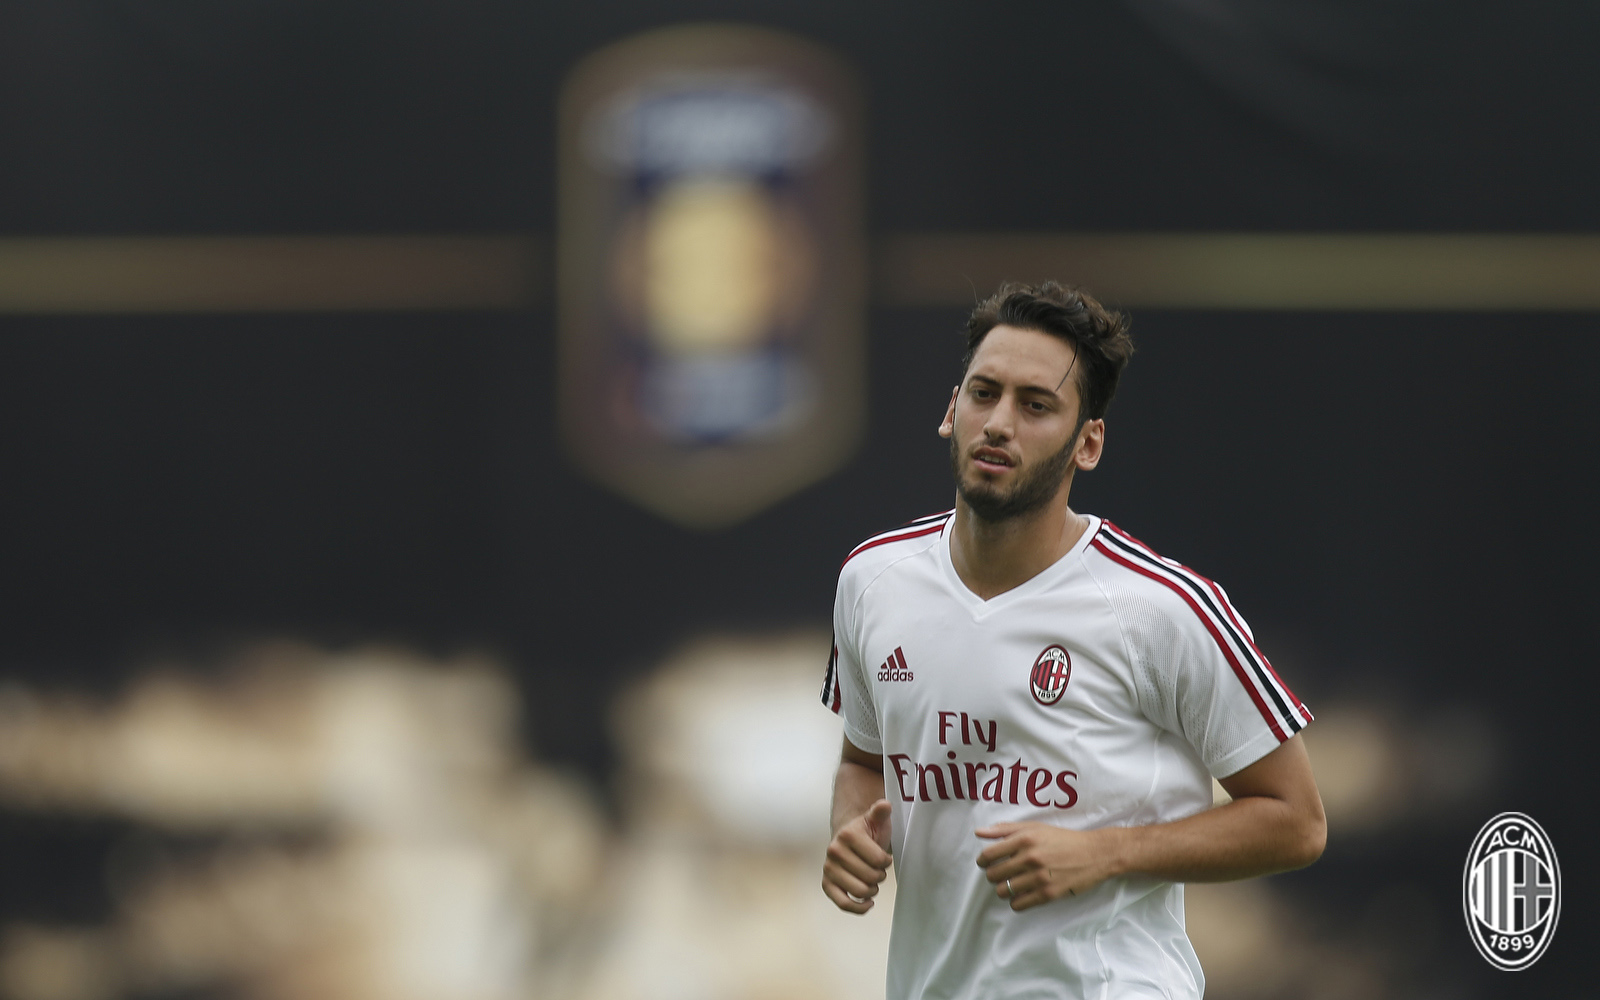 Foto LaPresse - Spada 15 Luglio 2017 - Guangzhou (Cina) A.C. Milan - Tournee Cina 2017 - Allenamento pomeridiano Sport Calcio Nella foto: Hakan Calhanoglu Photo LaPresse - Spada July 15, 2017 Guangzhou (China) Sport Soccer A.C. Milan -China Tournee 2017 - training session In the pic: Hakan Calhanoglu